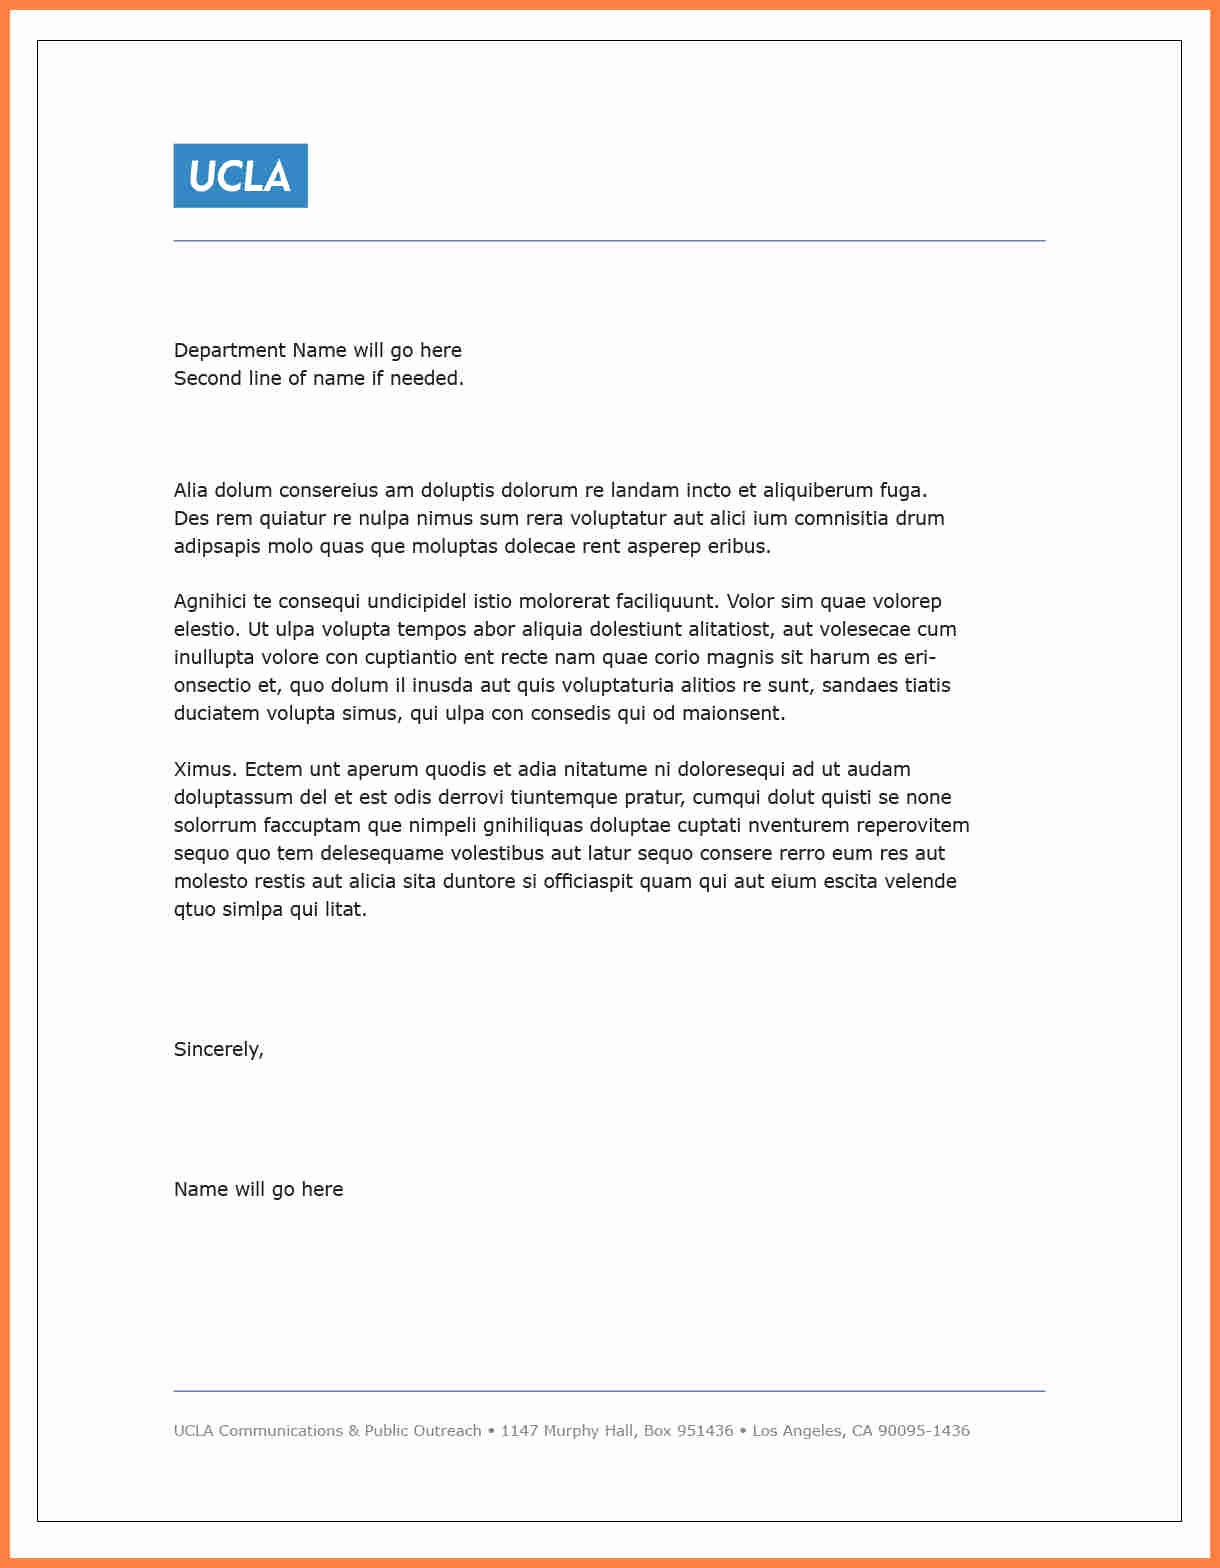 Microsoft Word Letterhead Templates Best Of 6 Letterhead Templates for Word